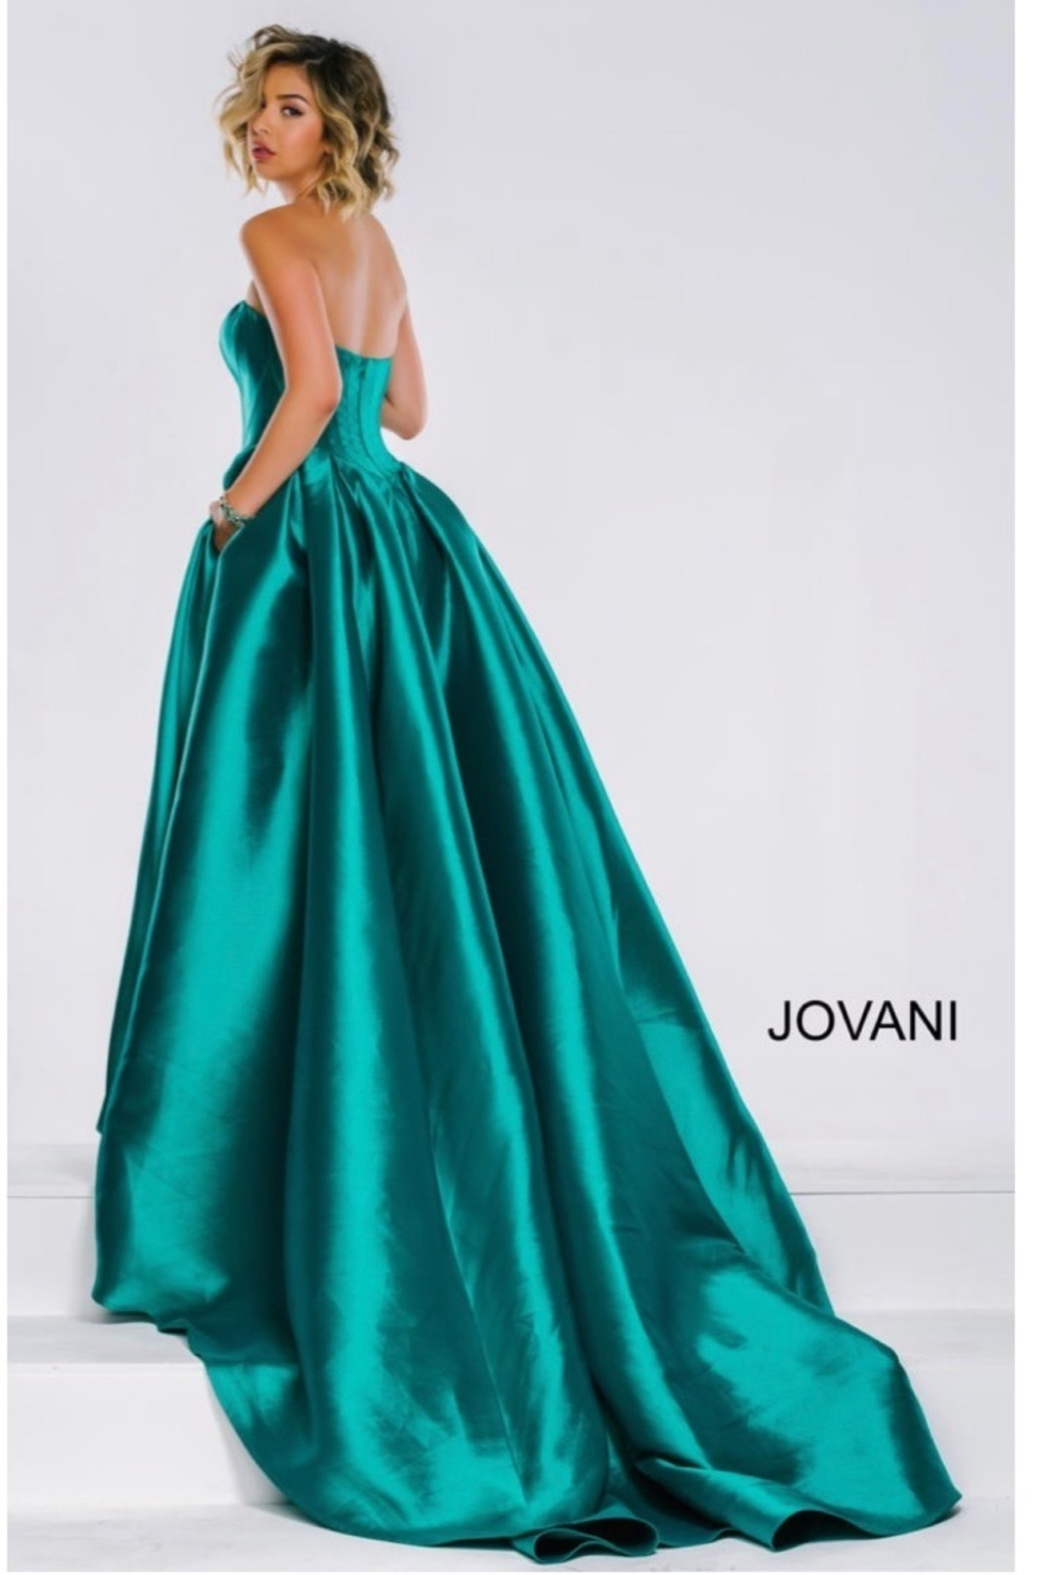 JOVANI FASHIONS EMERALD BUSTIER GOWN - Front Cropped Image